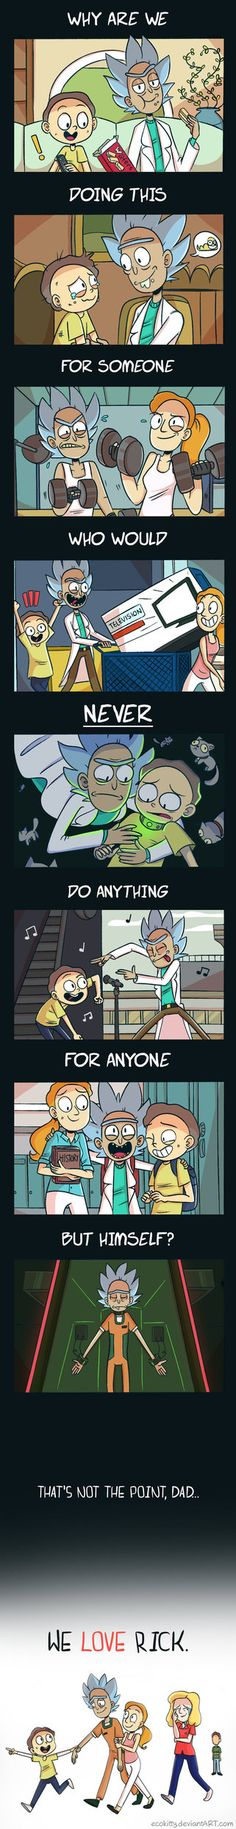 Depressing Rick and Morty Sad Quotes. 43 Depressing Rick and Morty Sad Quotes. We Love You Rick Rick Rick And Morty Quotes, Rick And Morty Poster, Ricky Y Morty, Geek Culture, Tmnt, Steven Universe, Adventure Time, Funny Pictures, Funny Memes